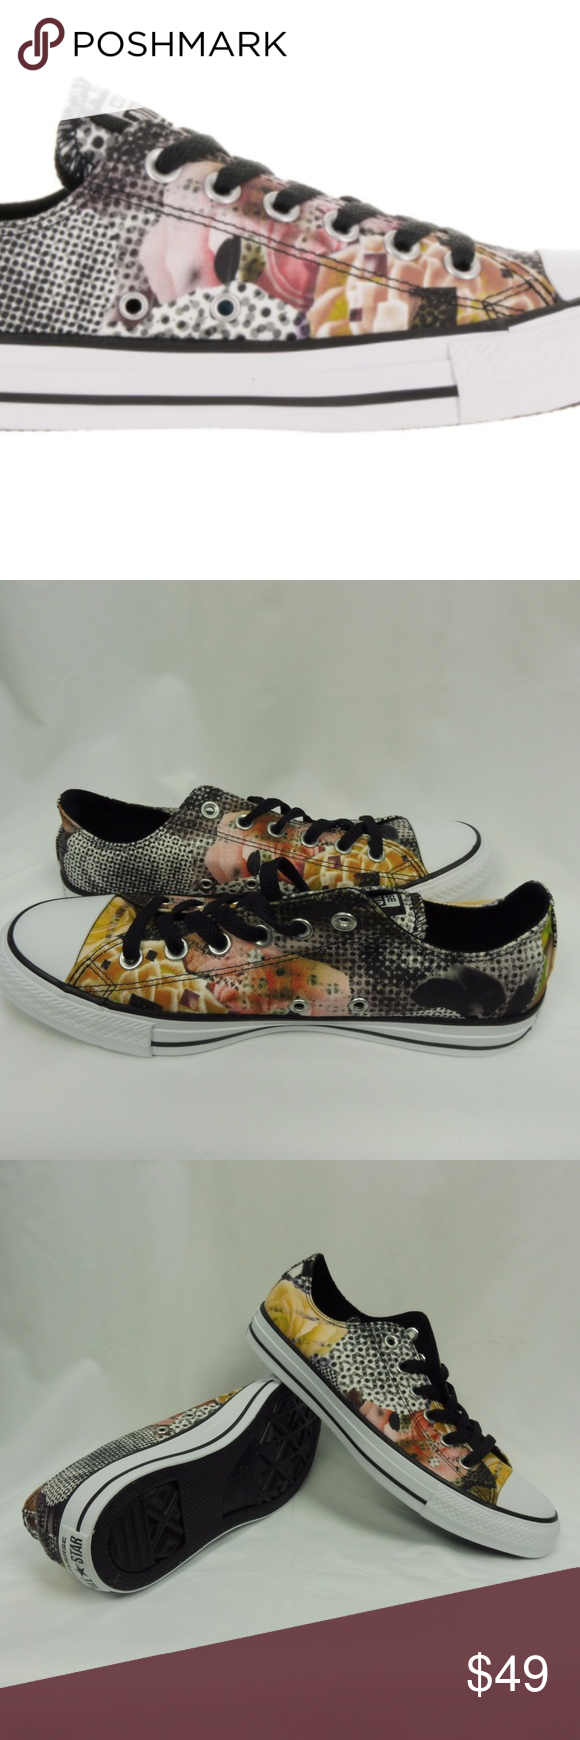 6781a1a0a14a CONVERSE CT AS DIGITAL FLORAL OX BLACK WHITE CONVERSE CT AS DIGITAL FLORAL  OX BLACK WHITE SNEAKERS WOMEN SIZE 9 553299F Converse Shoes Sneakers